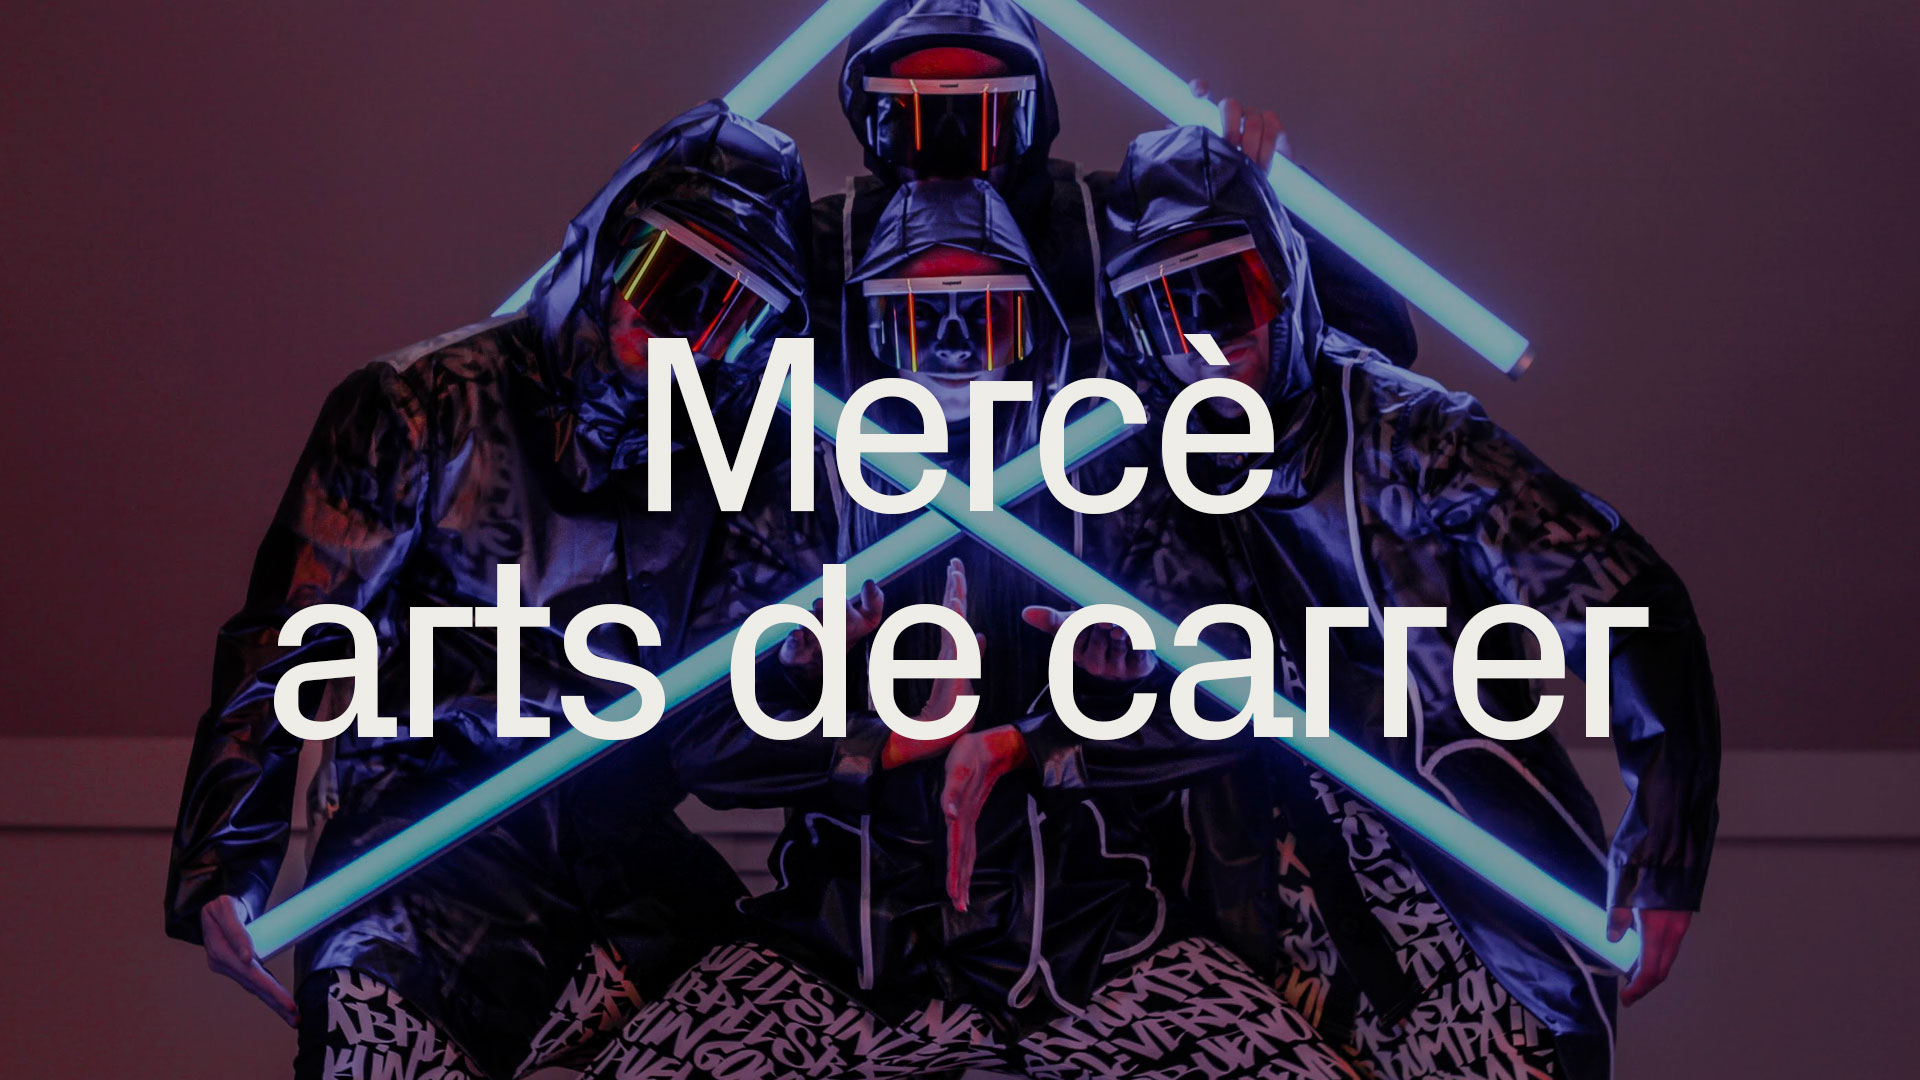 merce arts de carrer